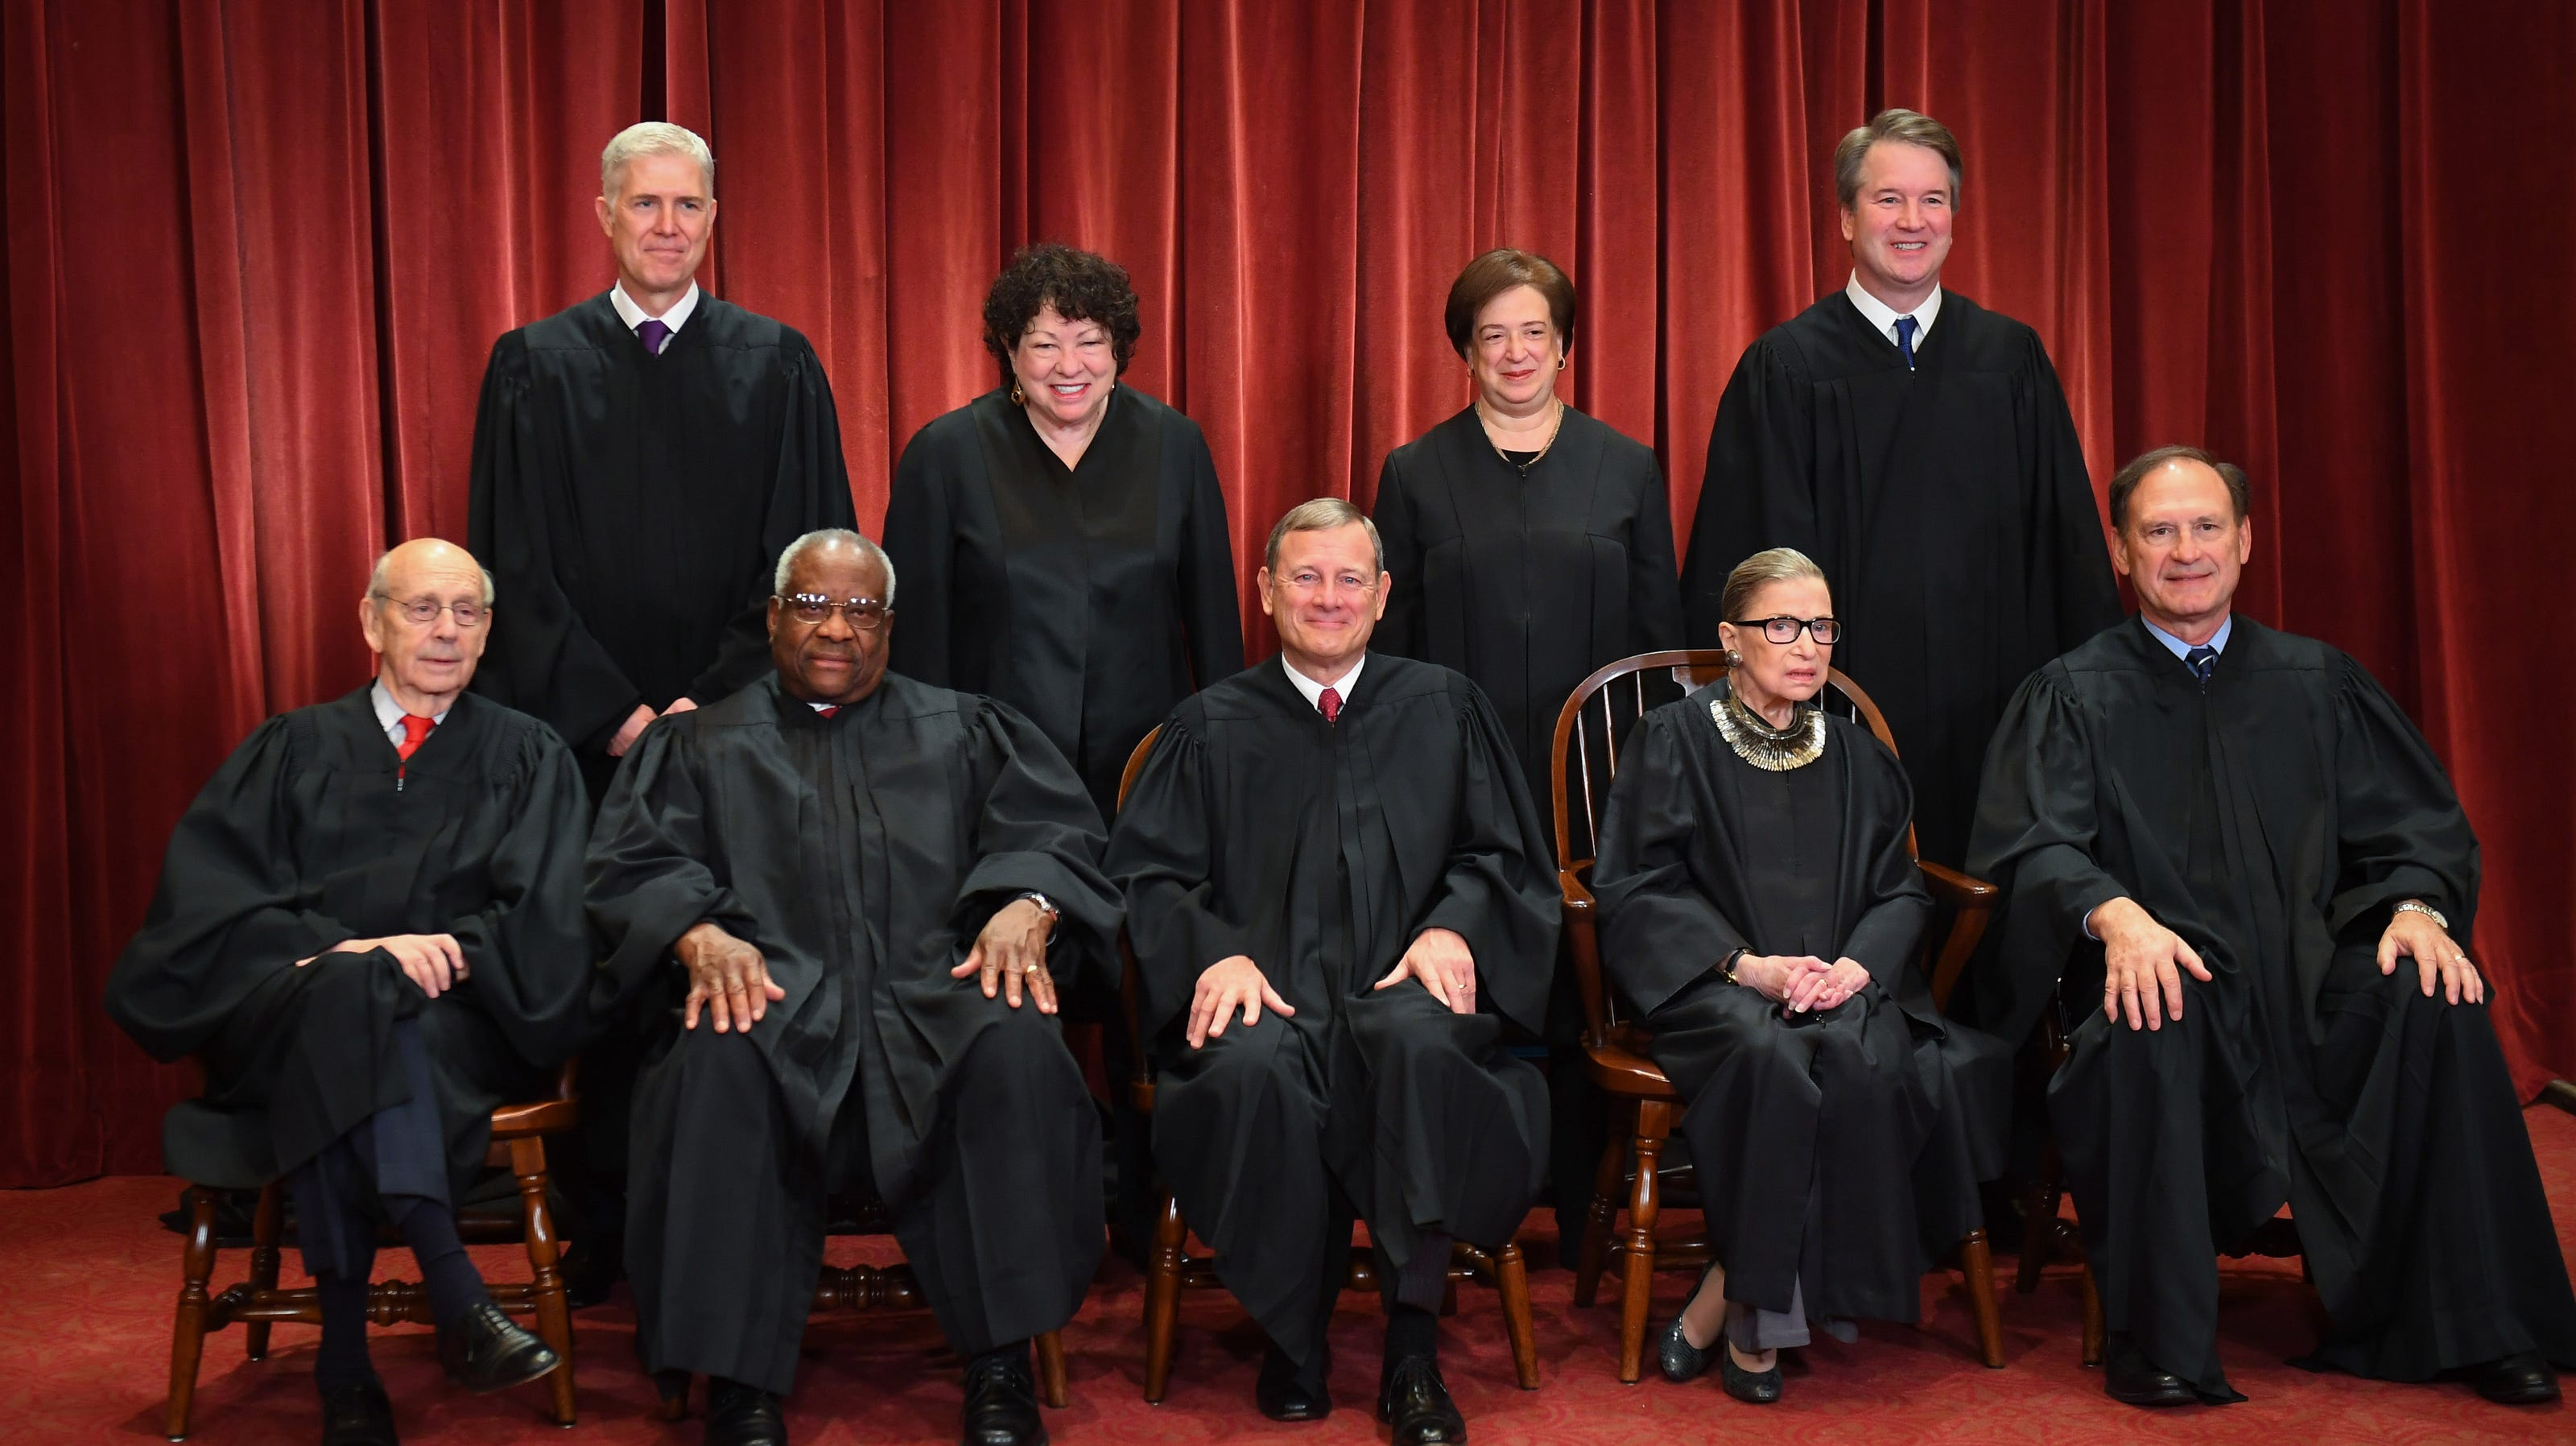 Supreme Court justices remember Ruth Bader Ginsburg as 'a superb judge' who 'inspired us all'